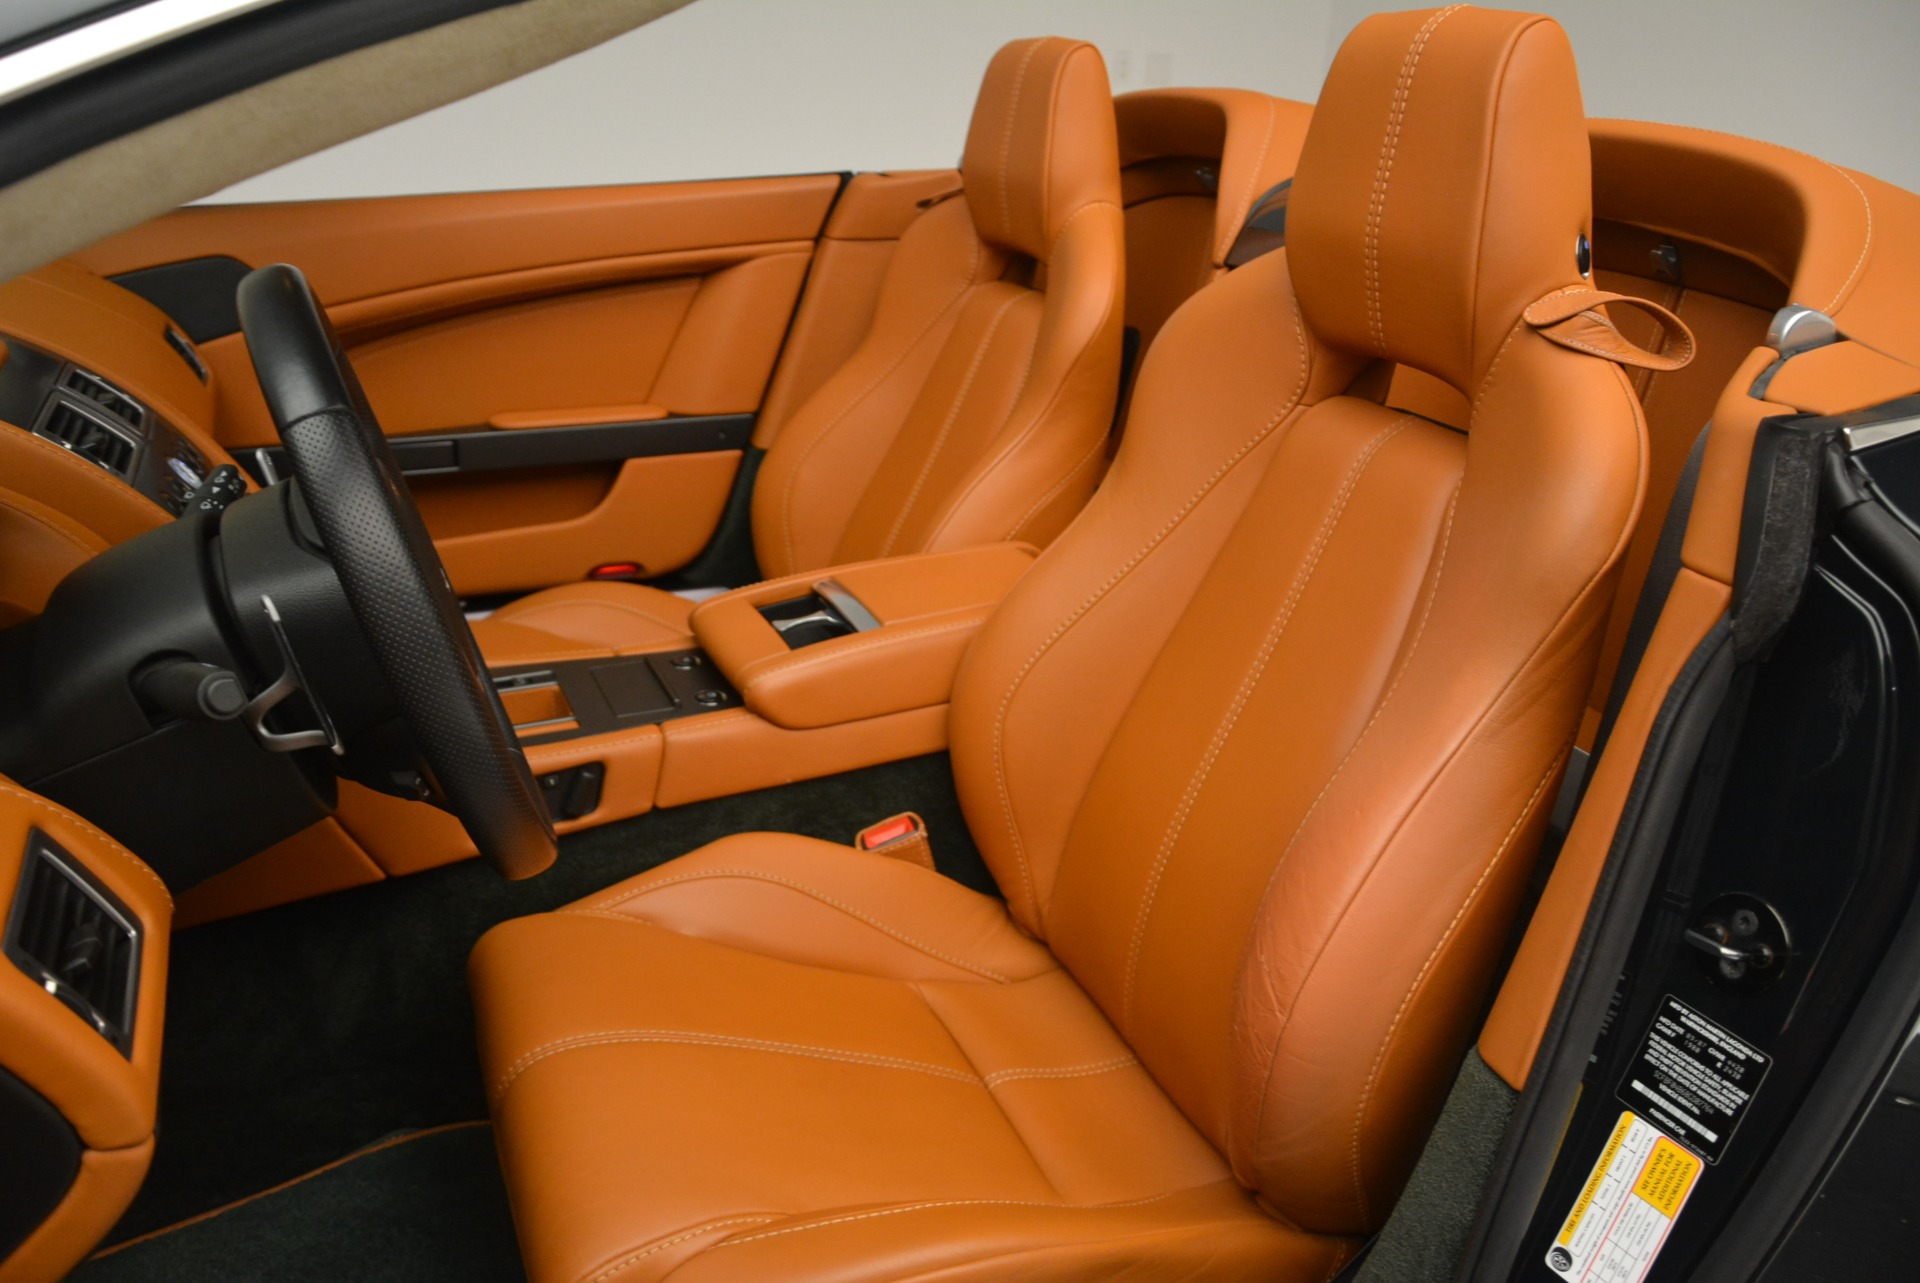 Used 2008 Aston Martin V8 Vantage Roadster For Sale In Westport, CT 2422_p18